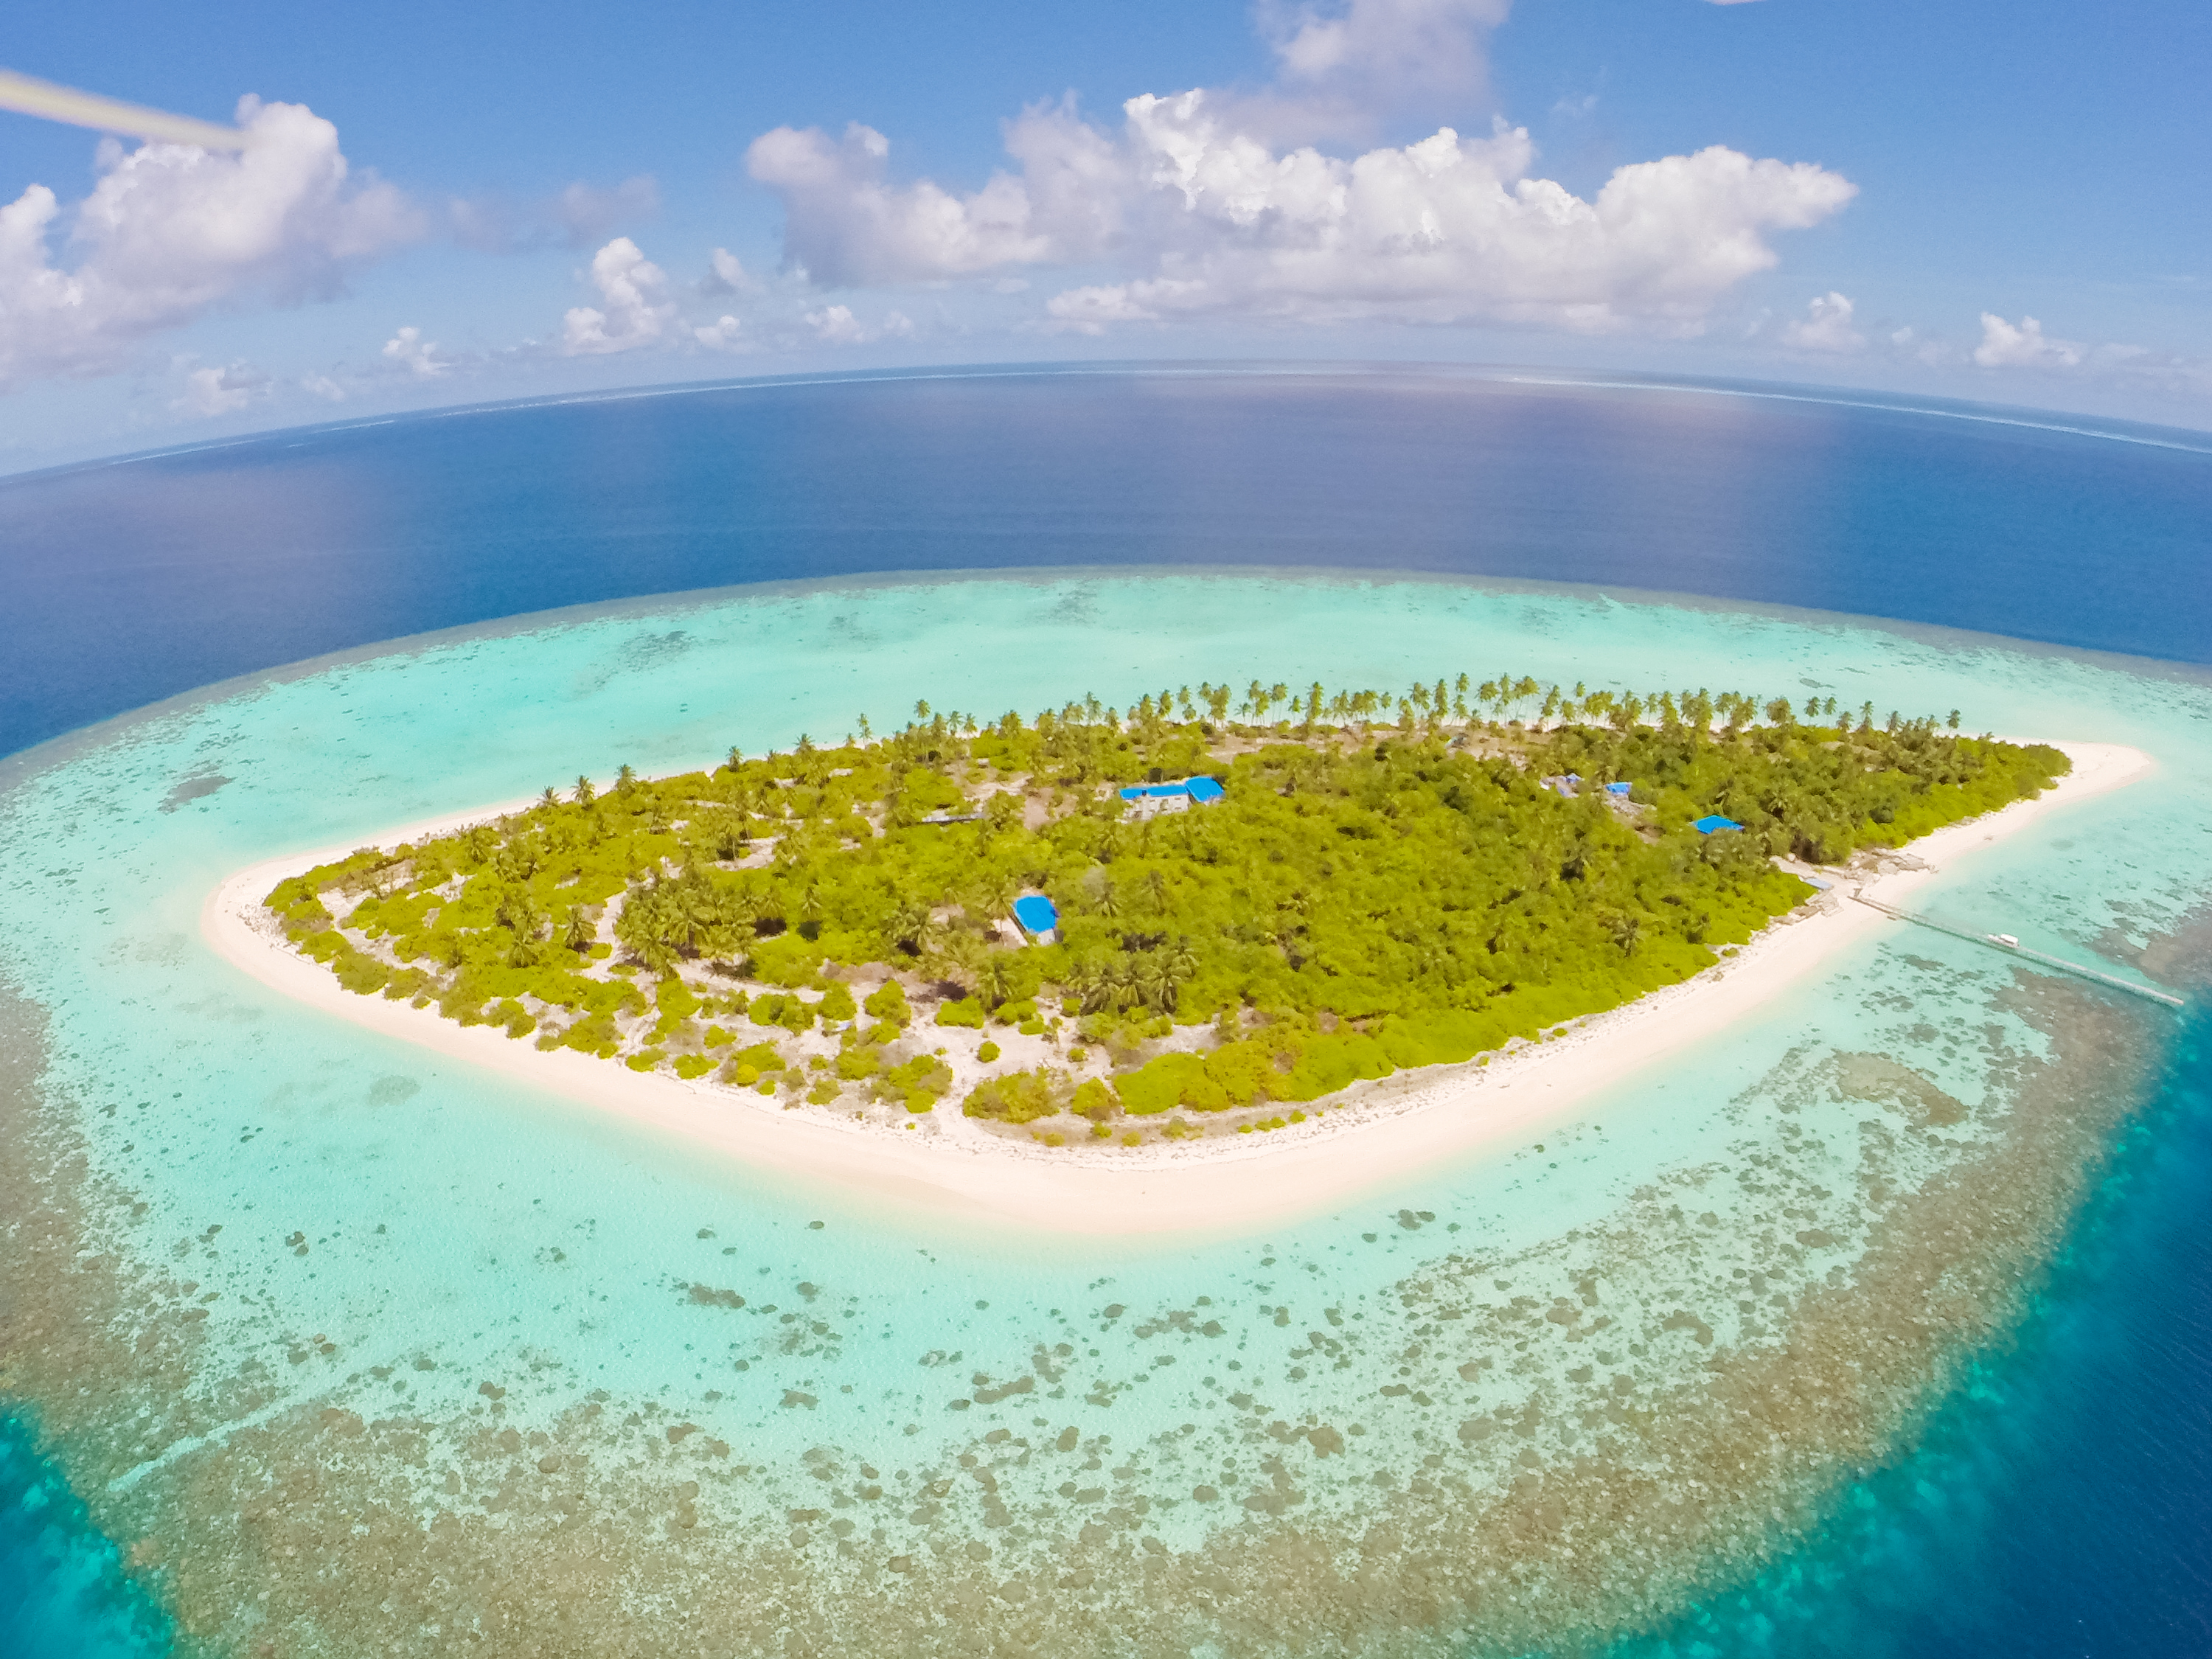 Opening in 2016, A Closer Look at Amari Havodda Maldives